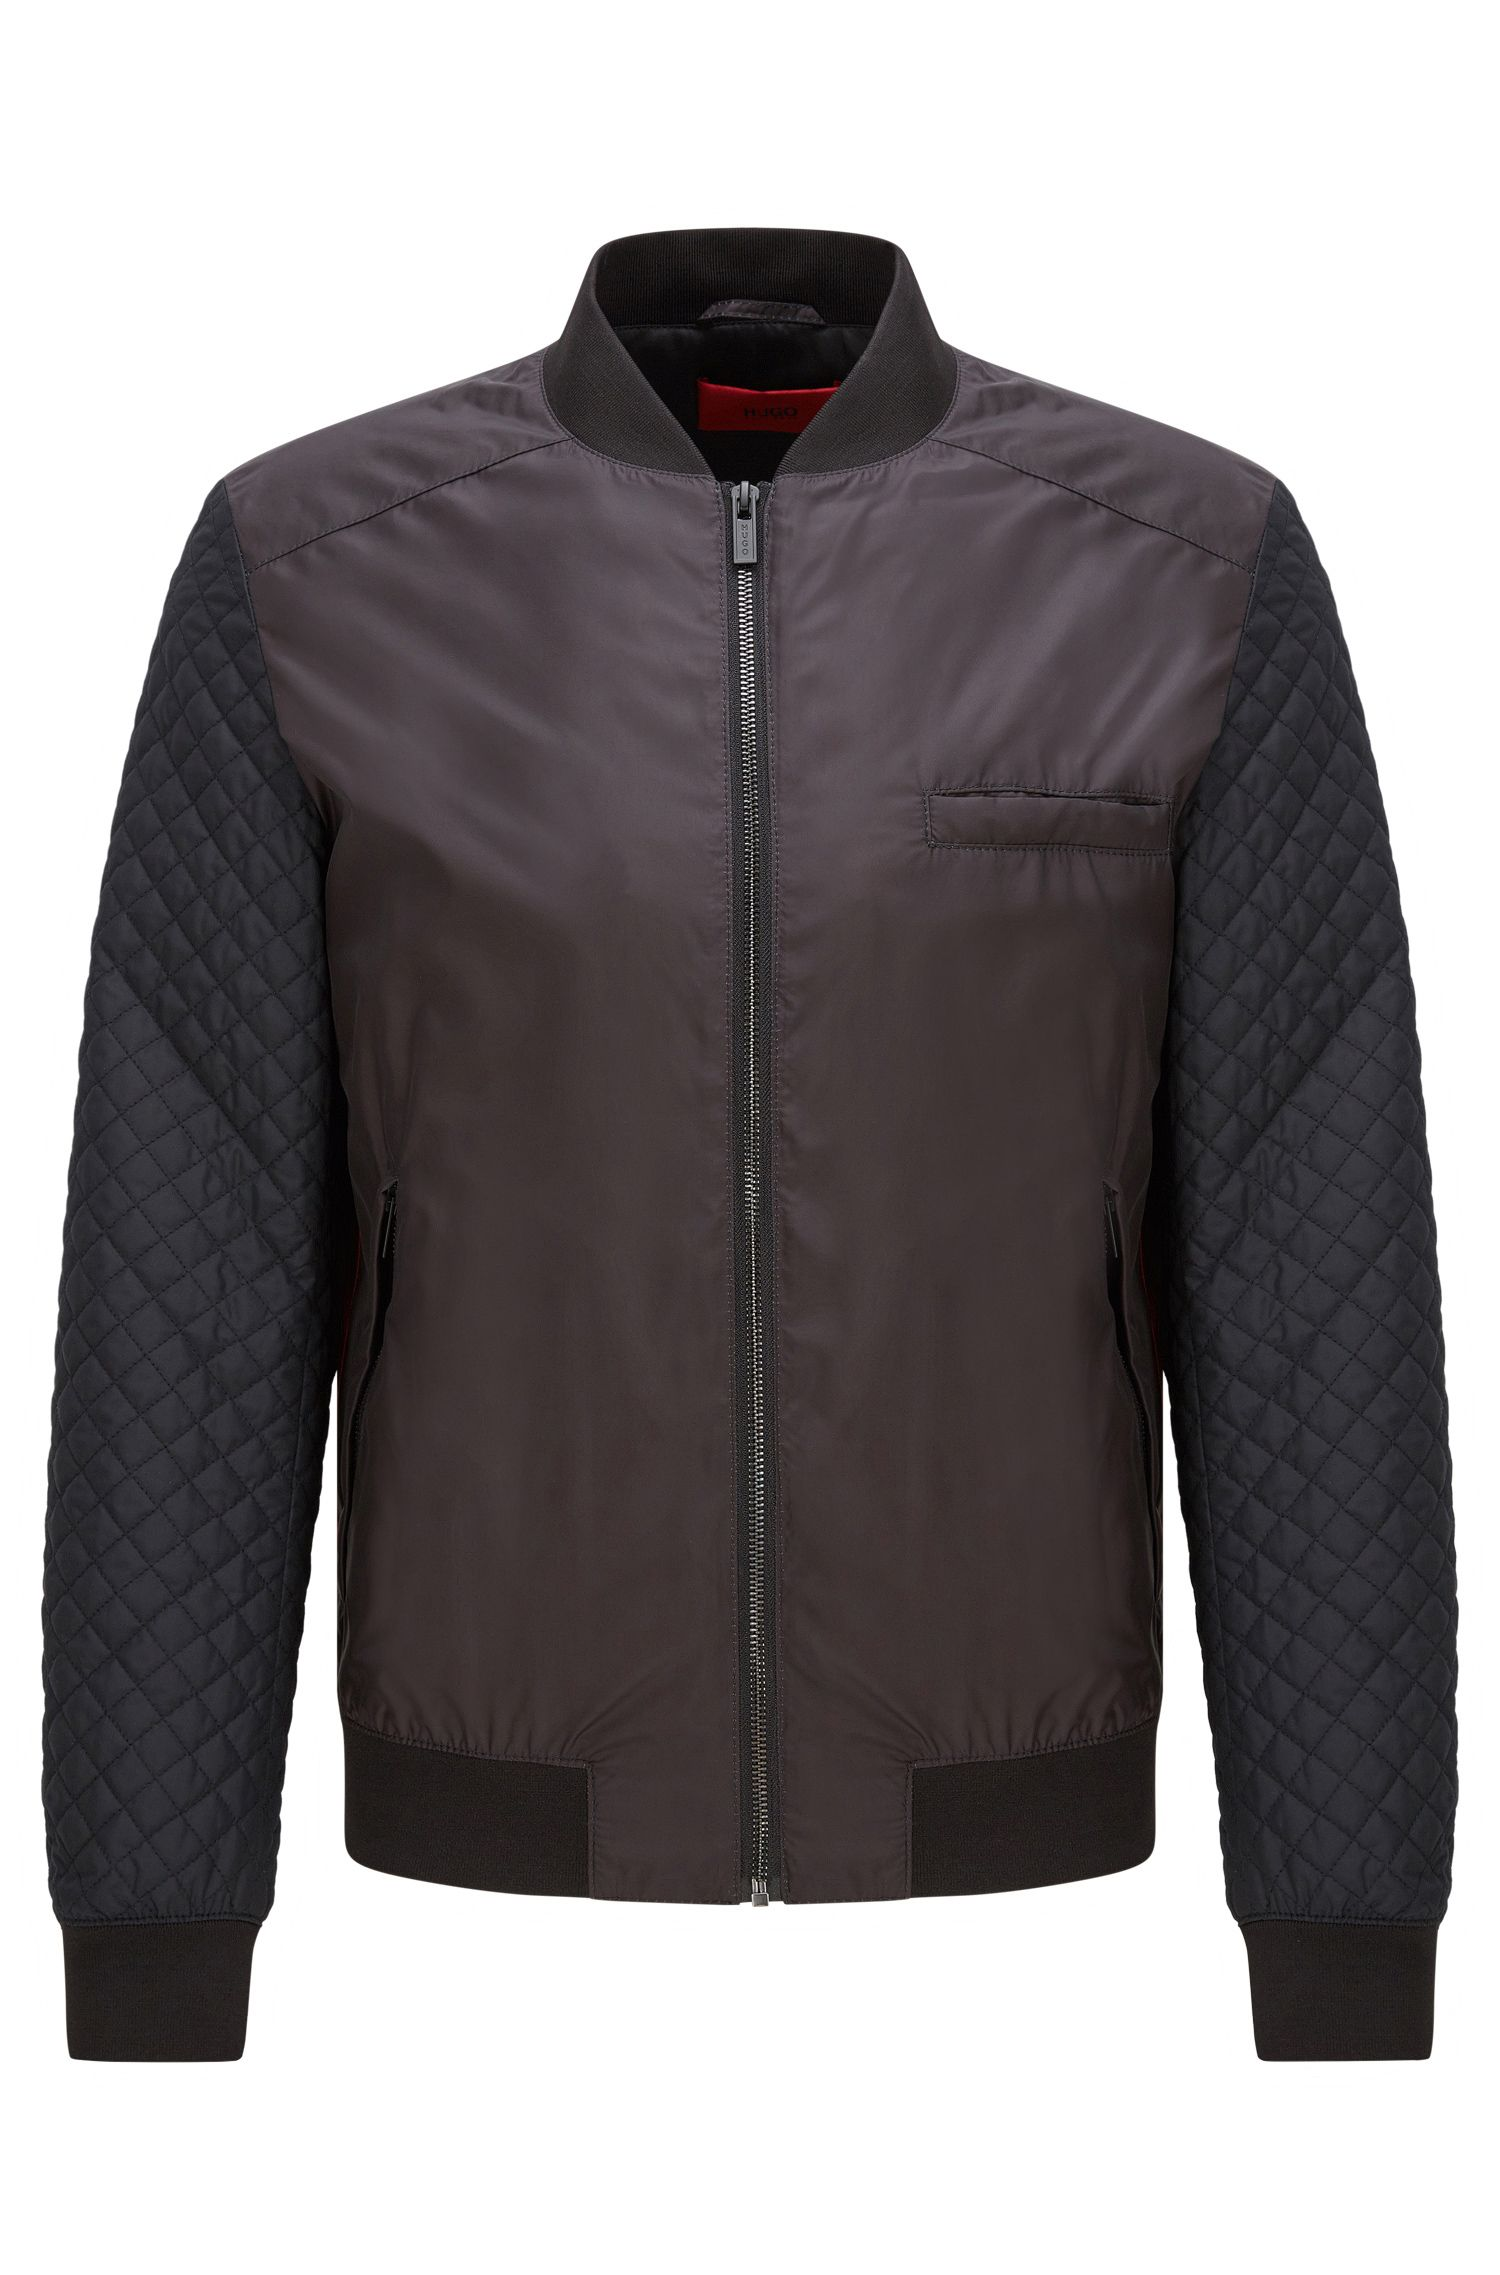 Technical-fabric bomber jacket with quilted sleeves